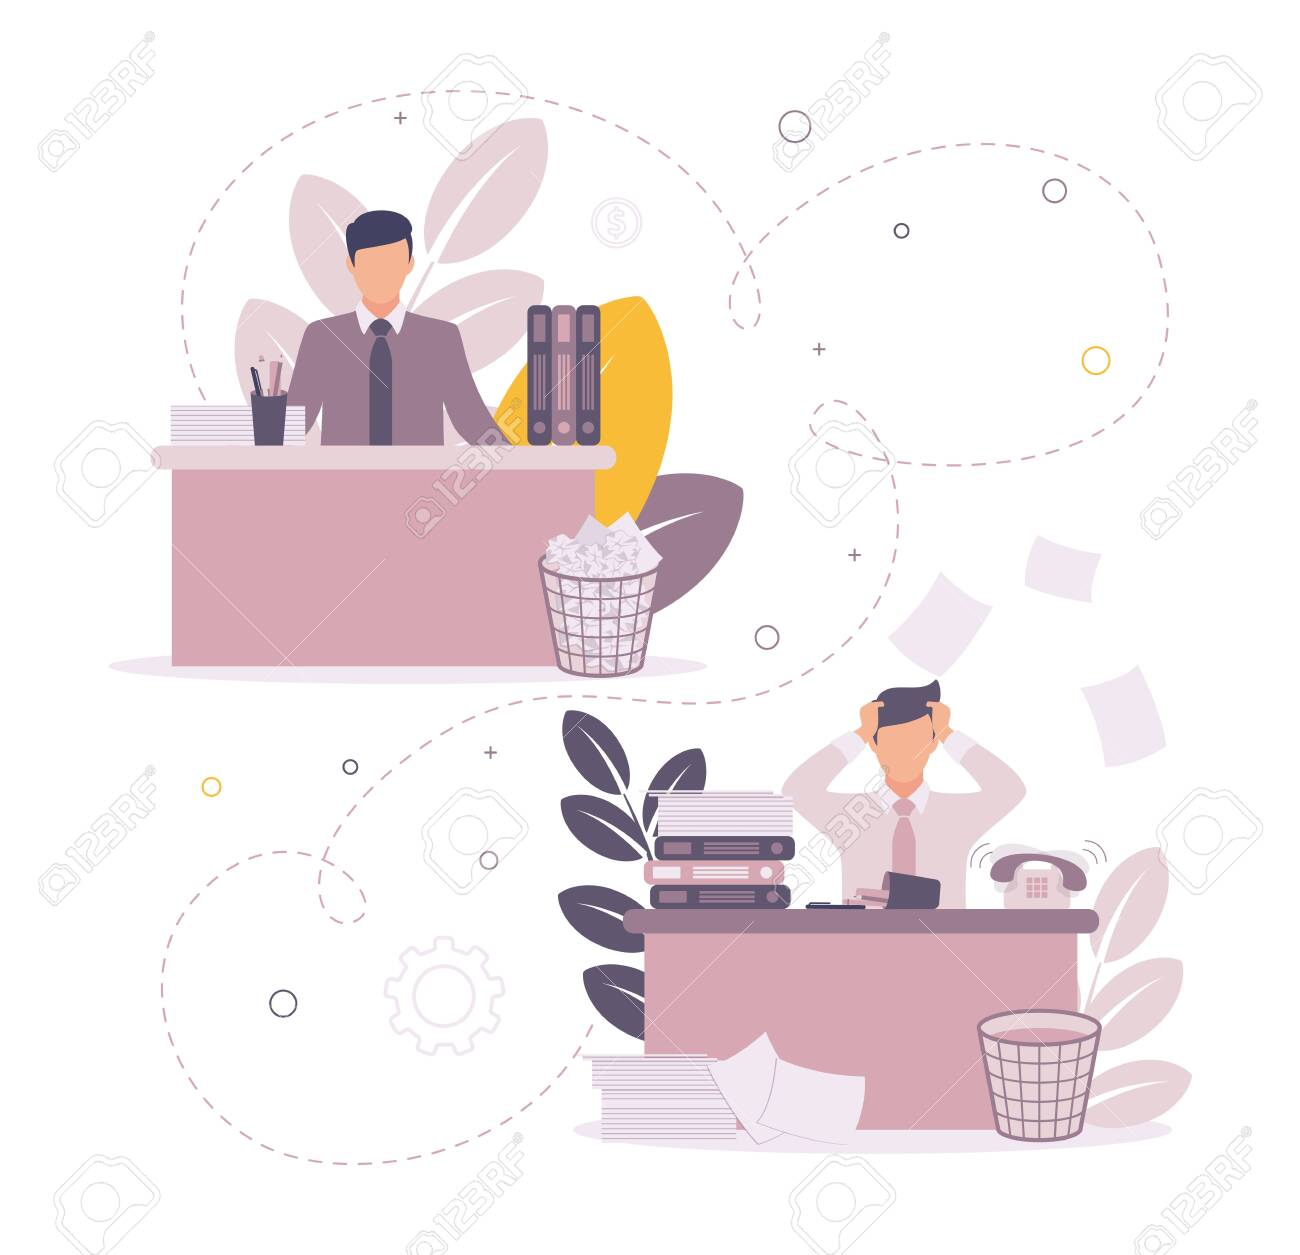 Time management illustration. Illustration of a man sitting at a table on which papers and folders, a checkmark above them on a task, against a background of a graph. - 151321859